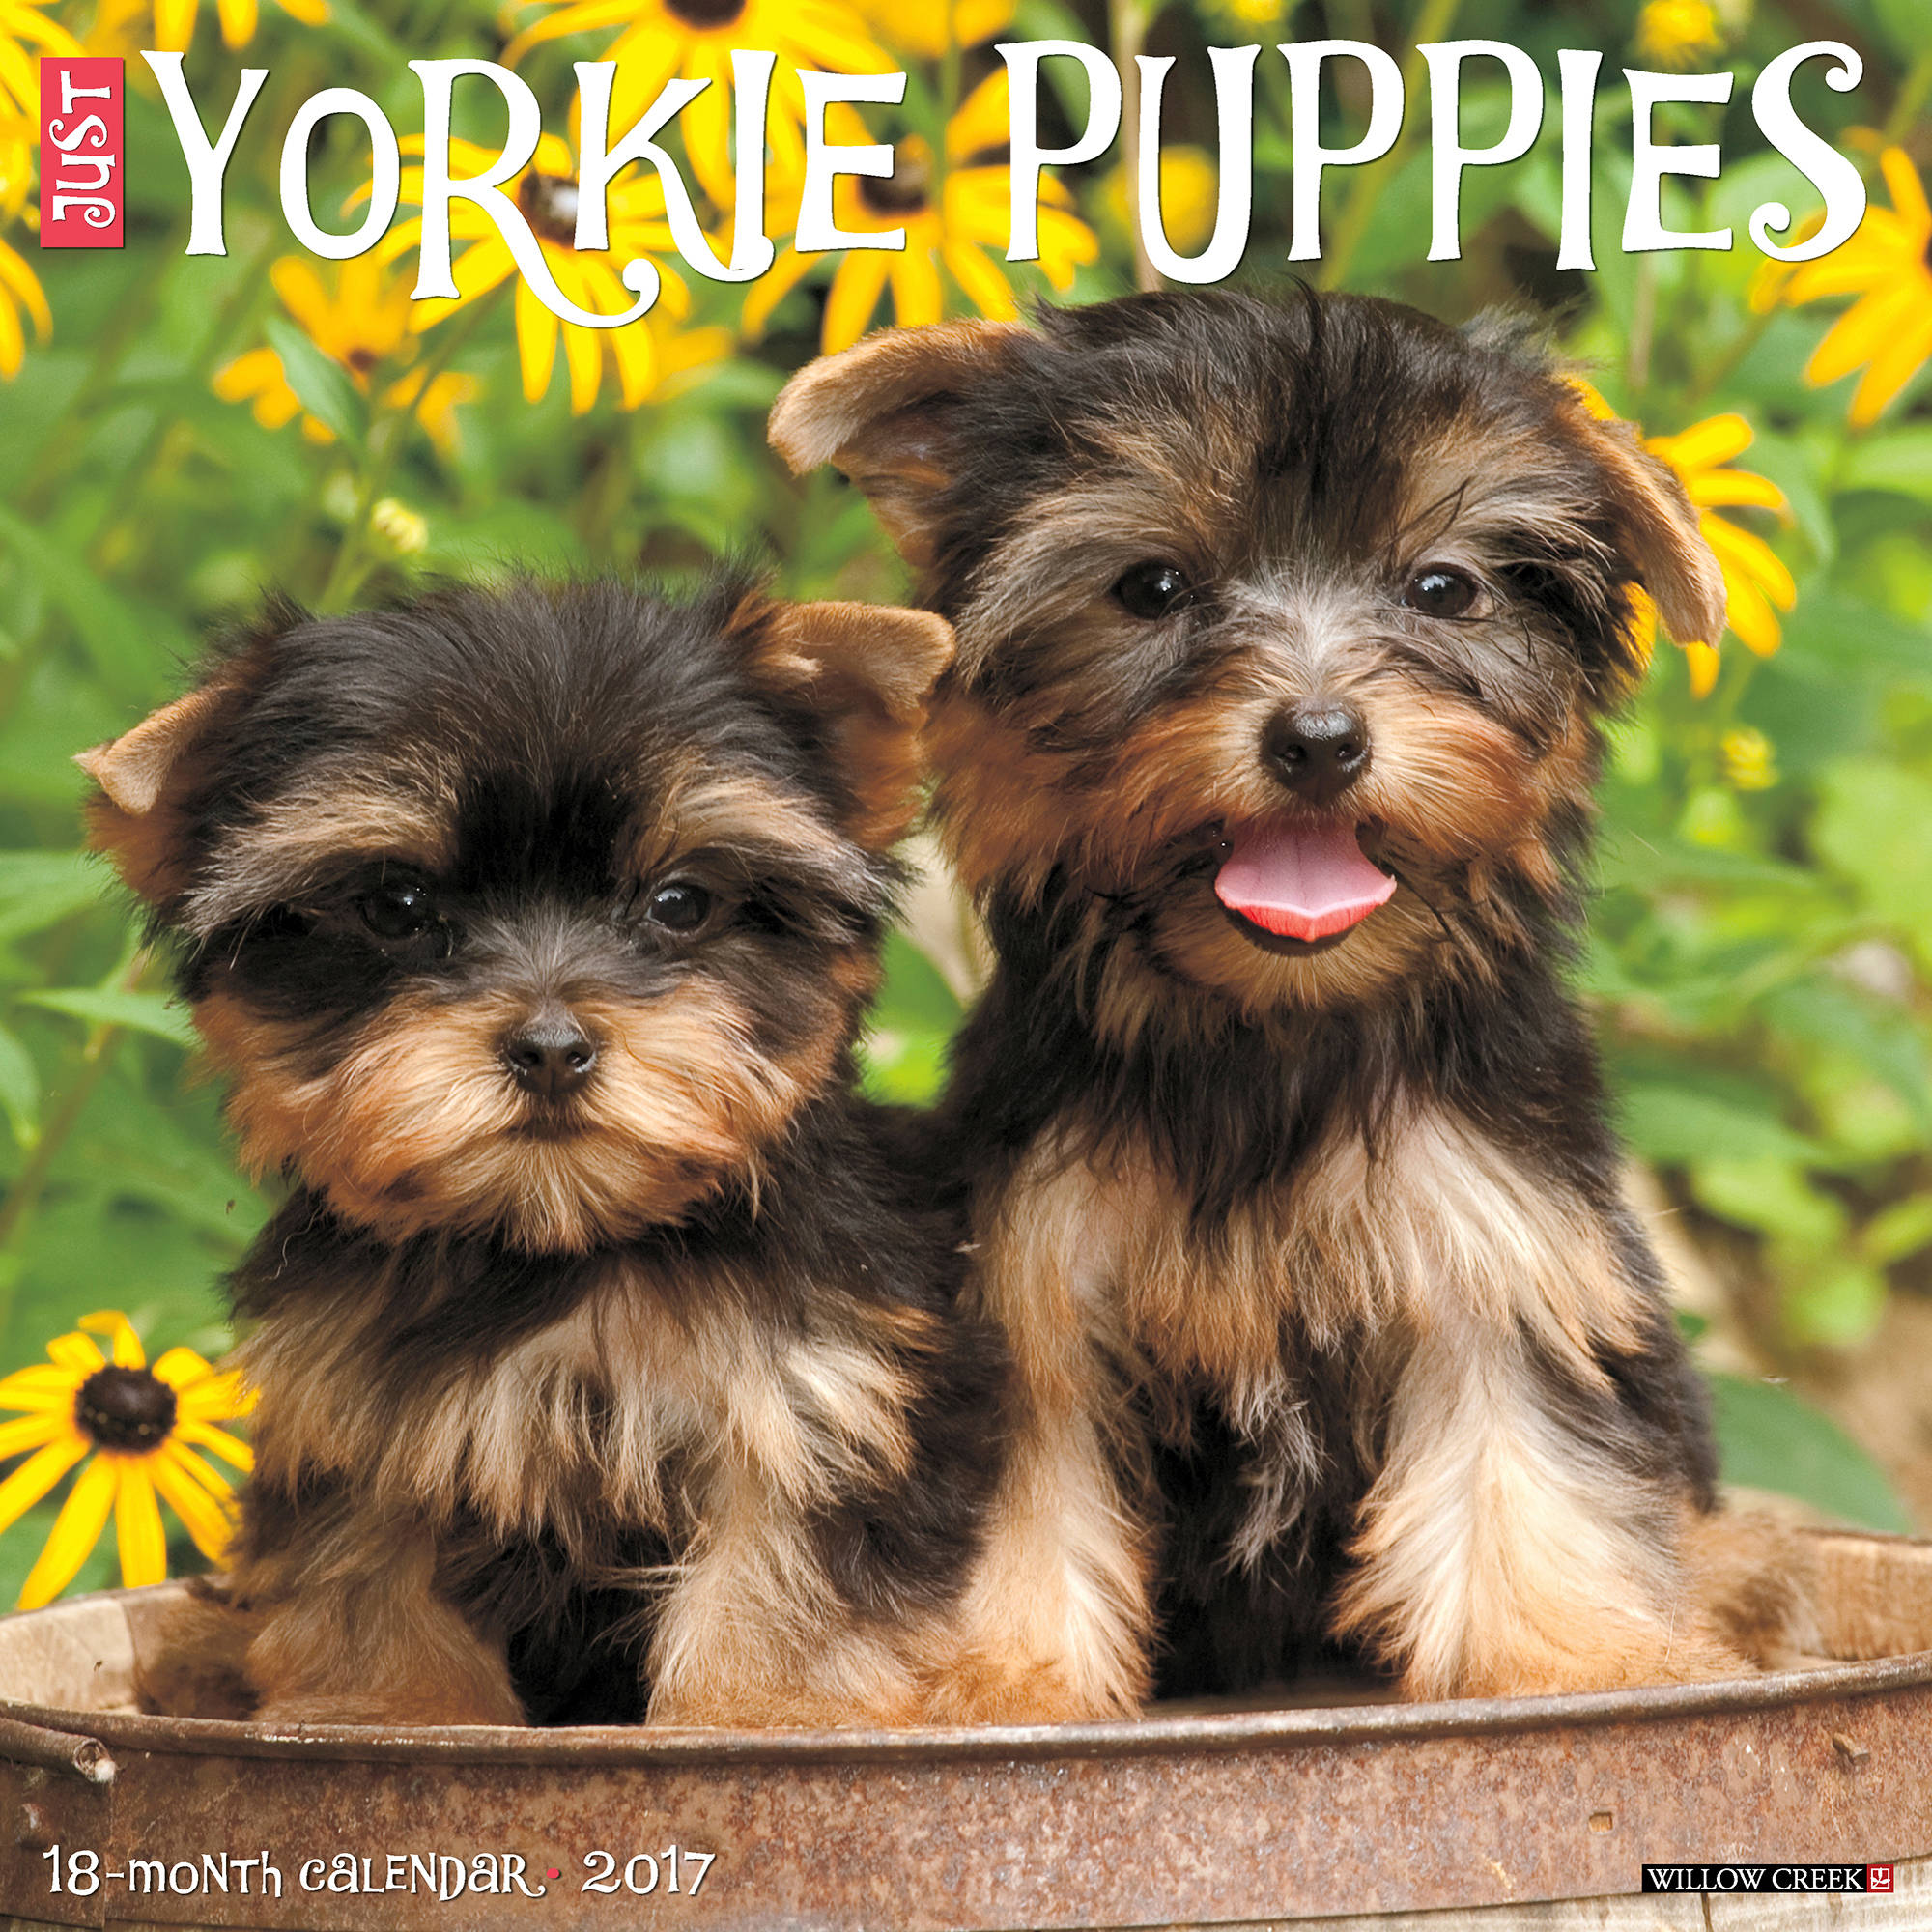 2017 Just Yorkie Puppies Wall Calendar